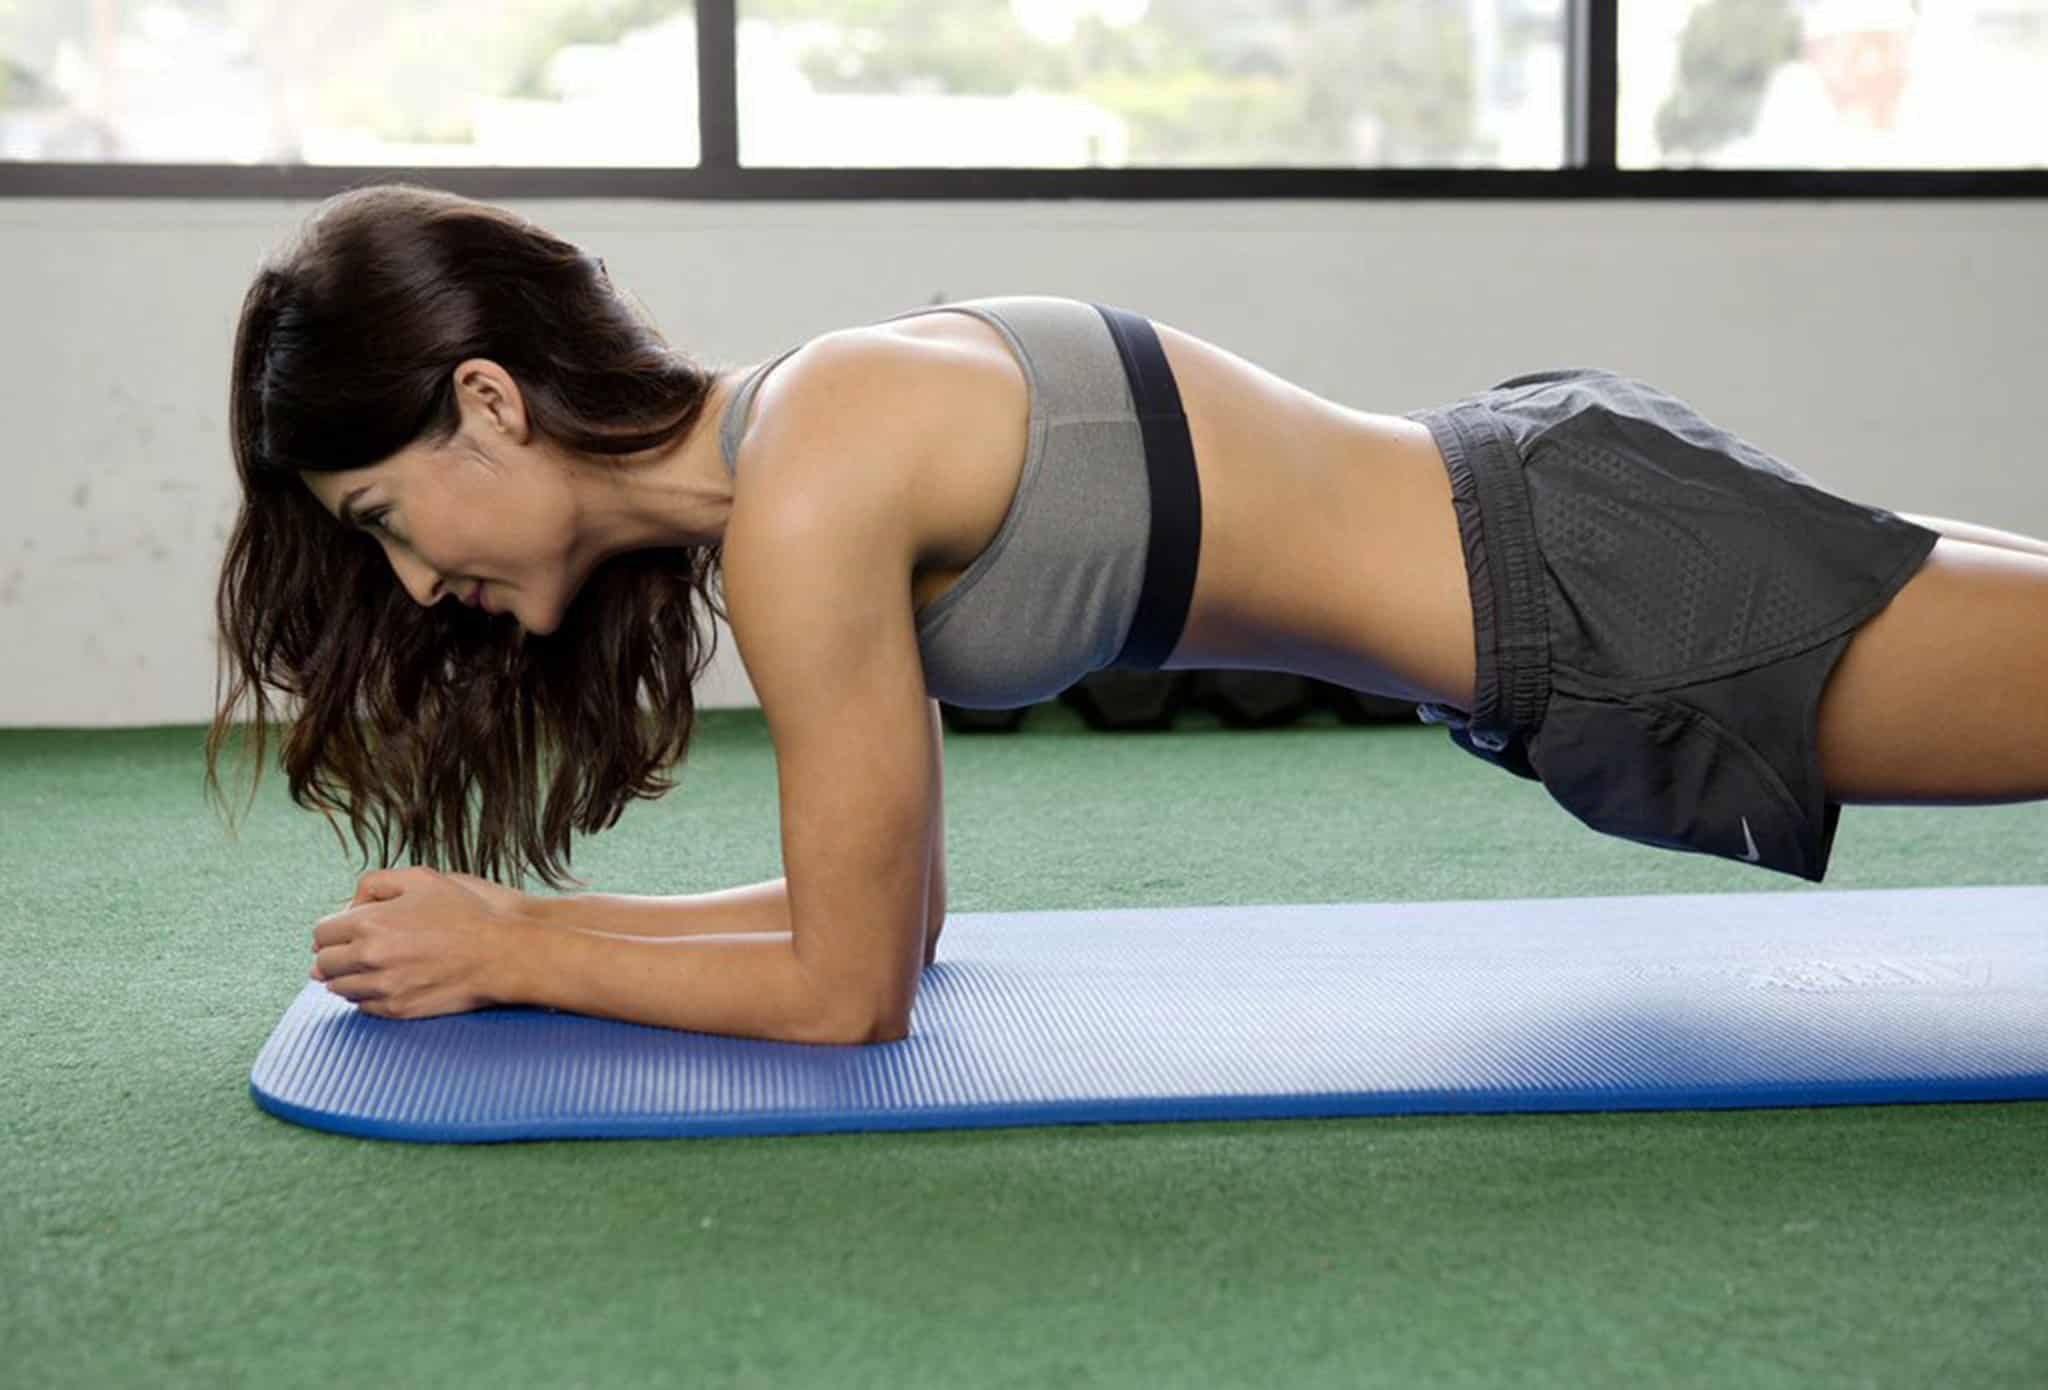 Get Fitter By The End Of The Month With This 4-Minutes-A-Day Exercise 1